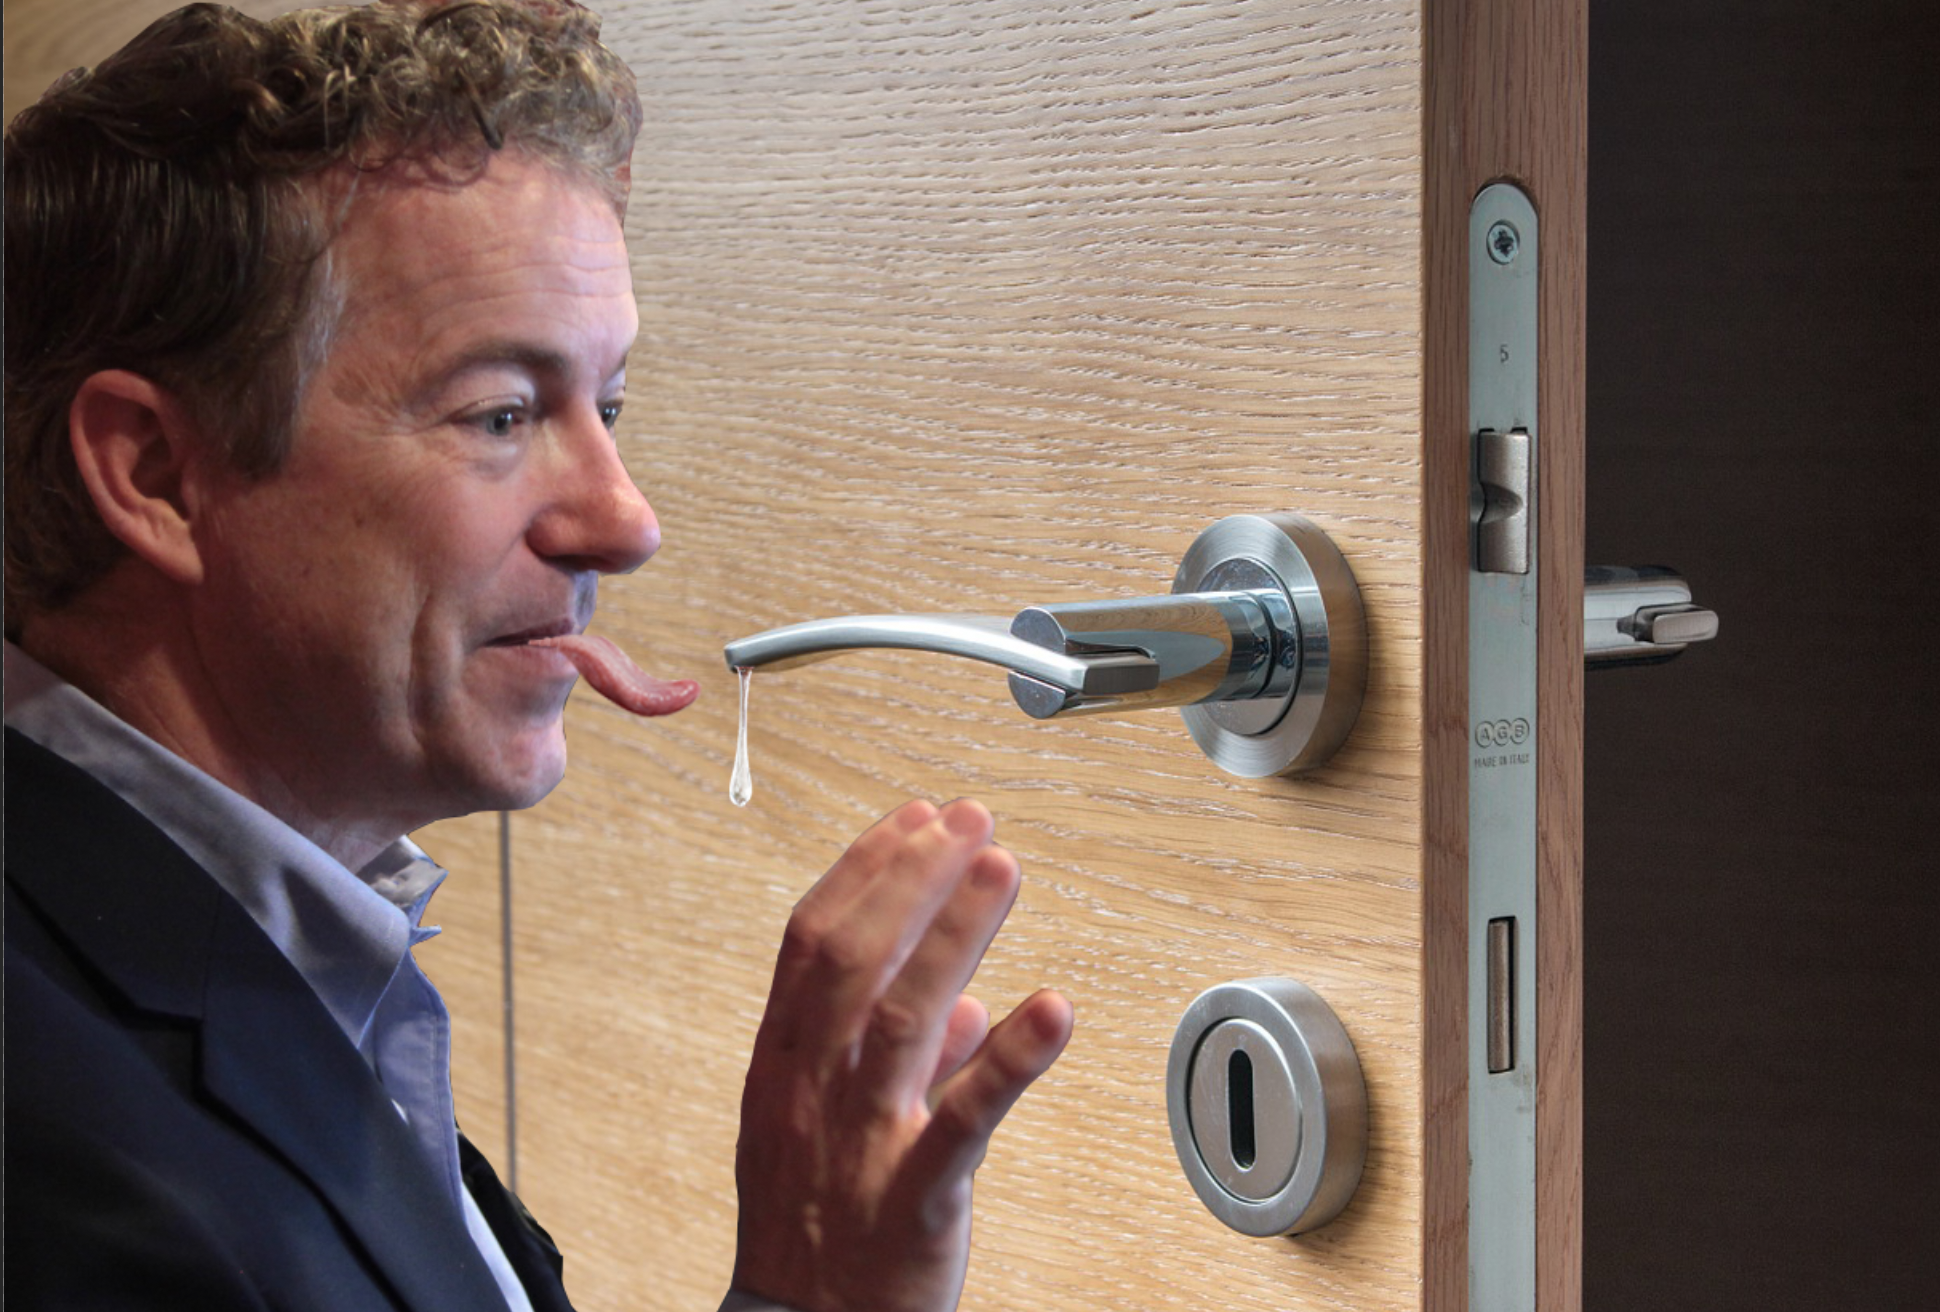 Rand Paul licks and slobbers on doorknob while encouraging americans to achieve herd immunity